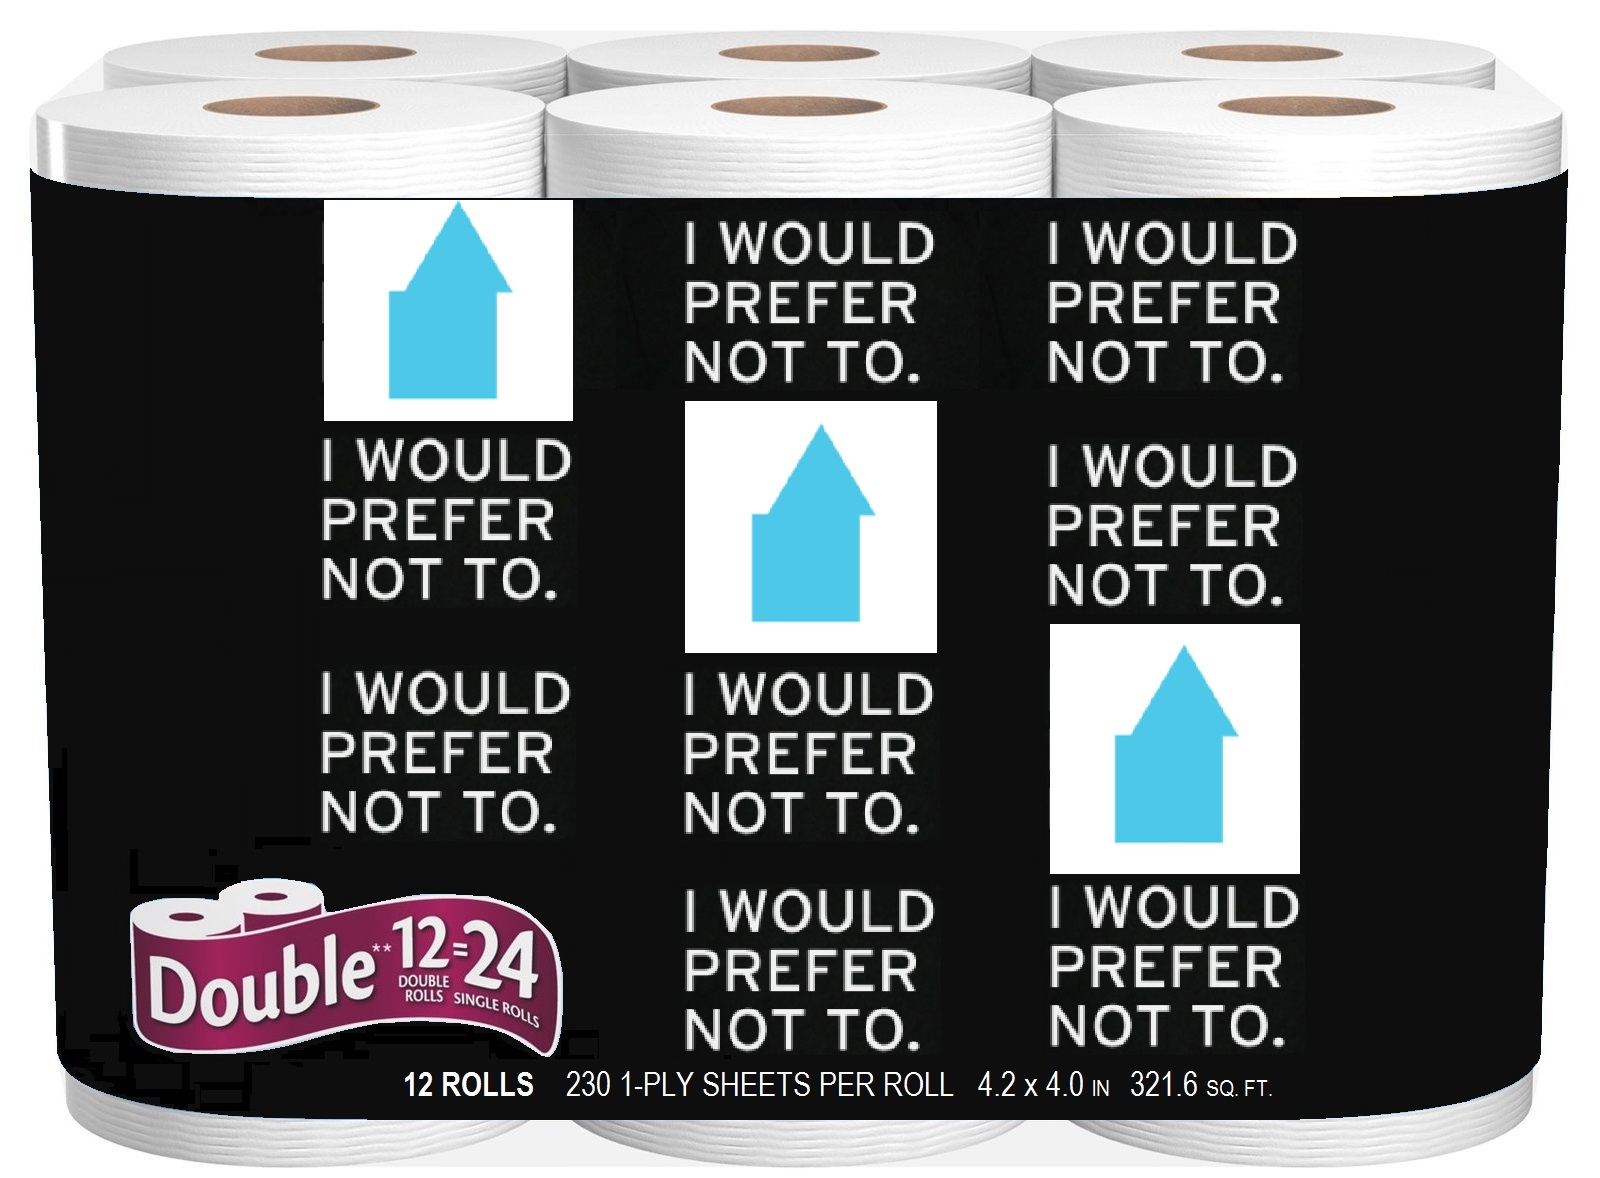 Amazon gets into the diaper business; Melville House gets into the toilet paper business